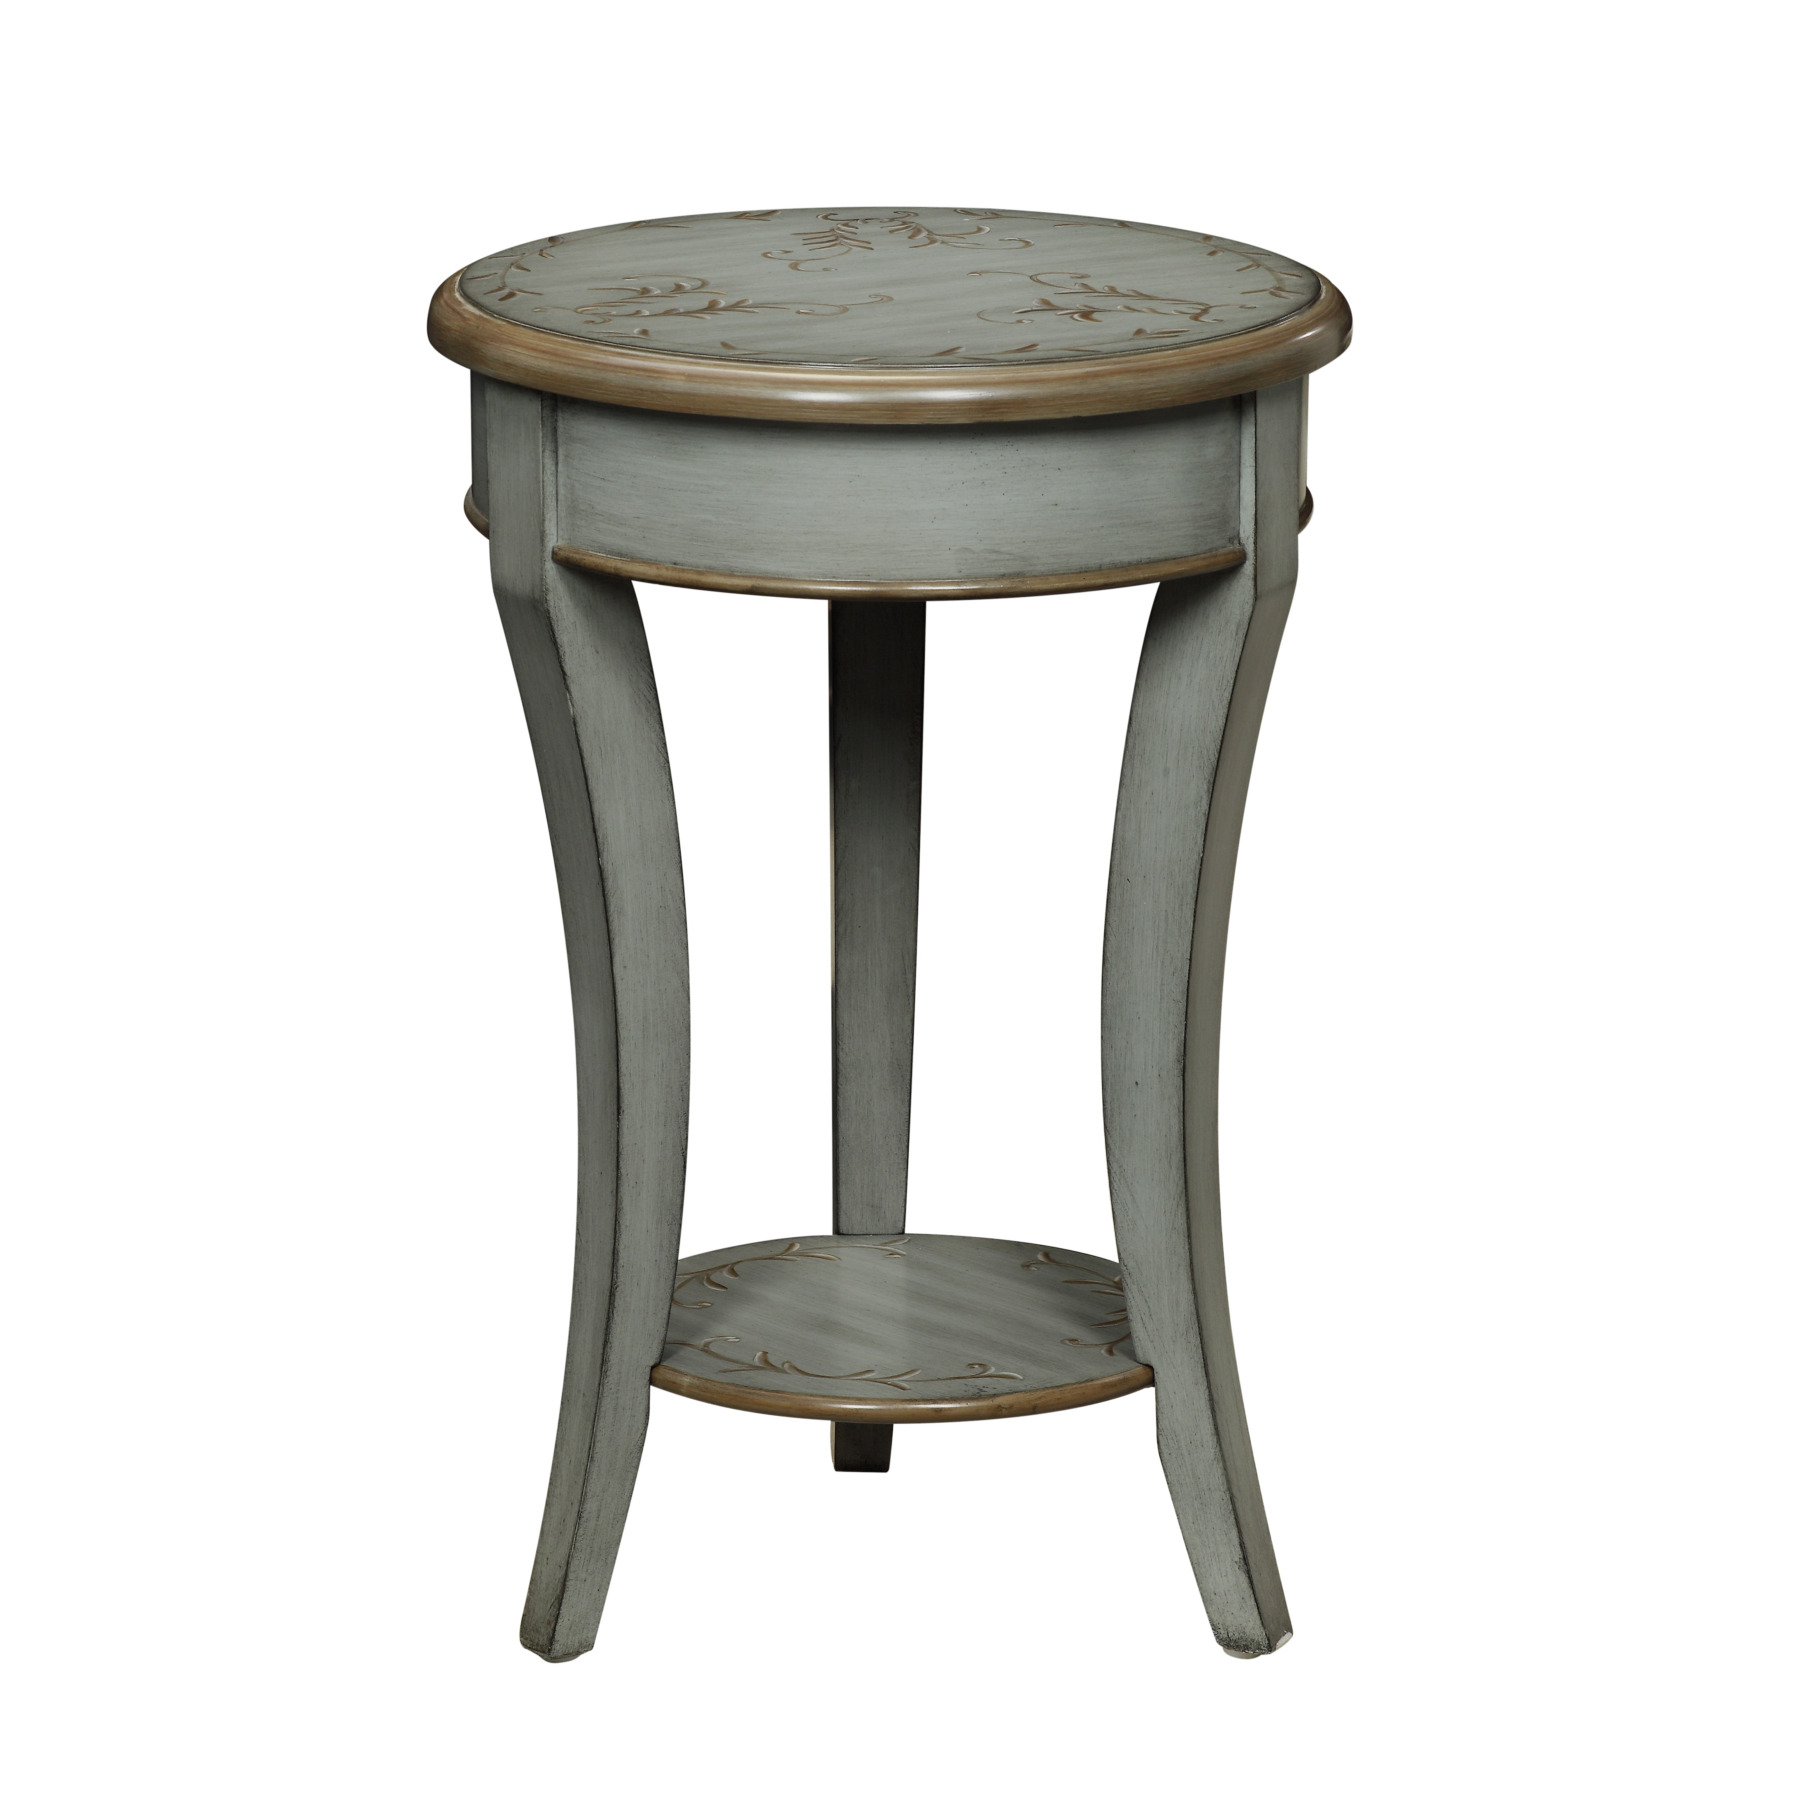 michael anthony furniture floral top greygreen round gray accent table target fretwork threshold windham cabinet recycled wood white linen placemats matching lamps glass pedestal